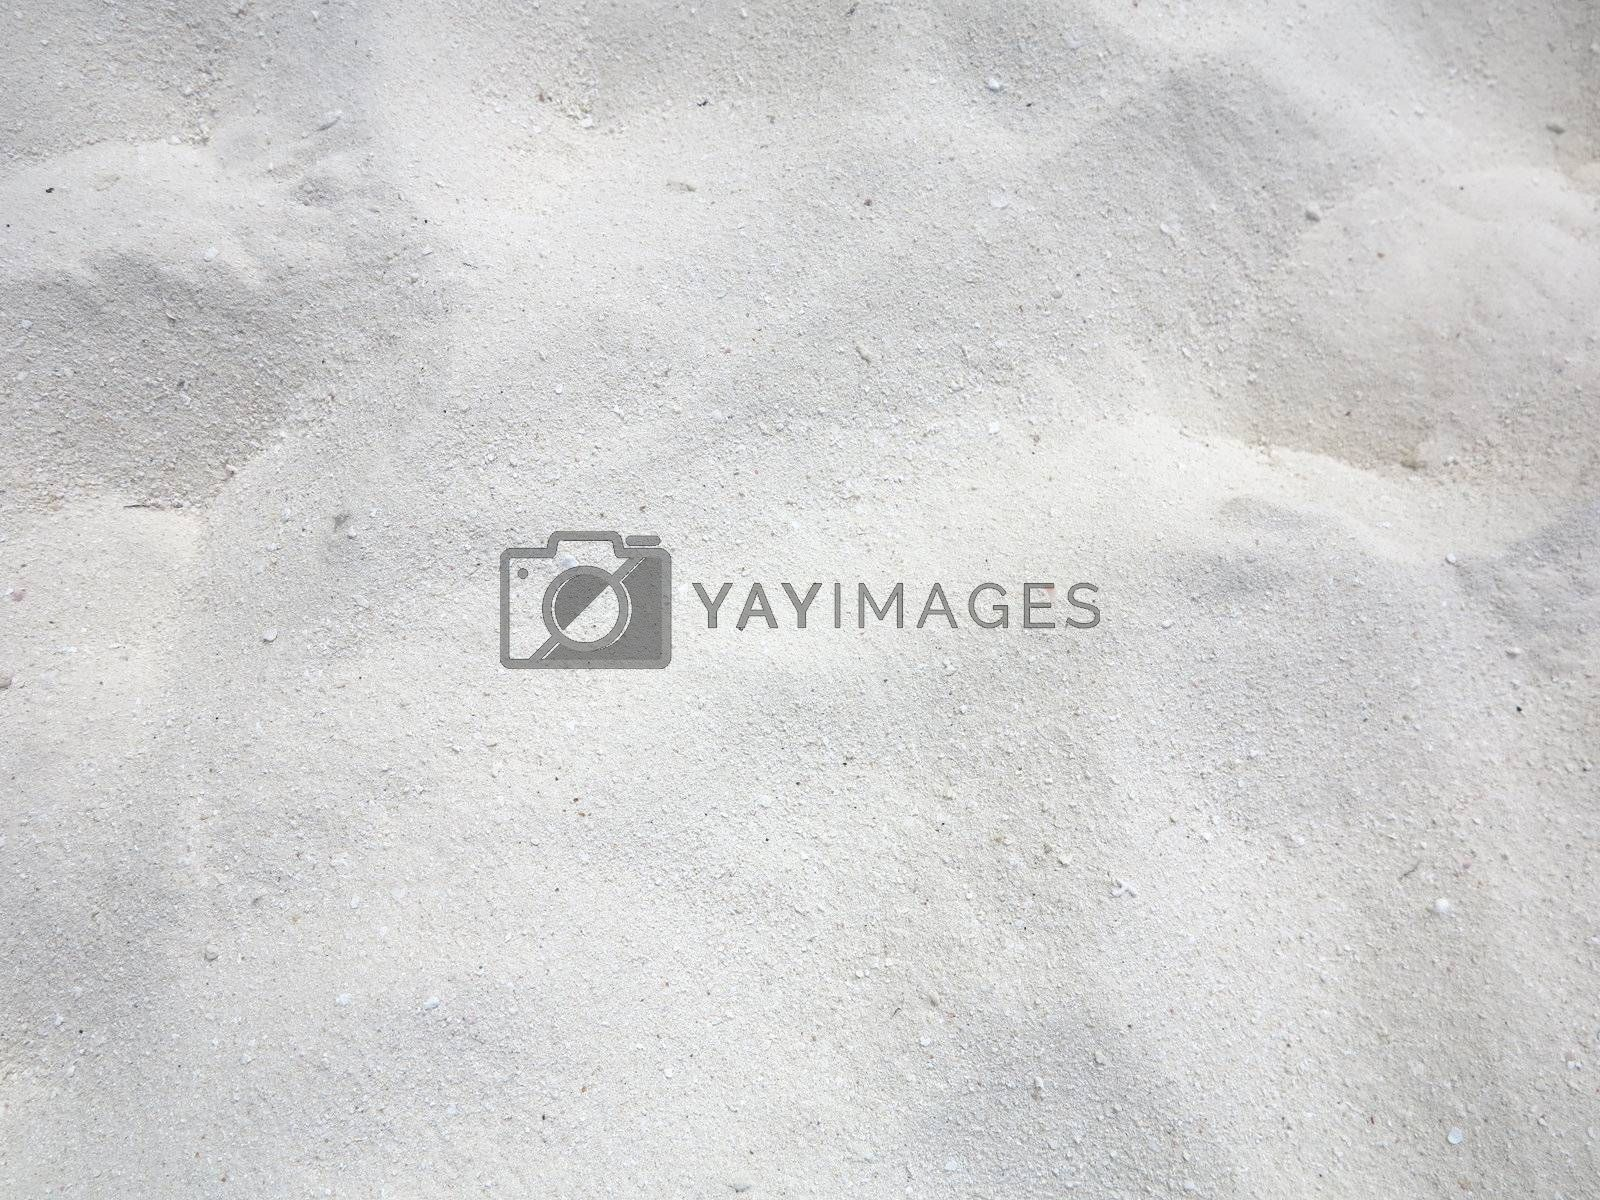 Fine grain white beach sand texture background by get4net